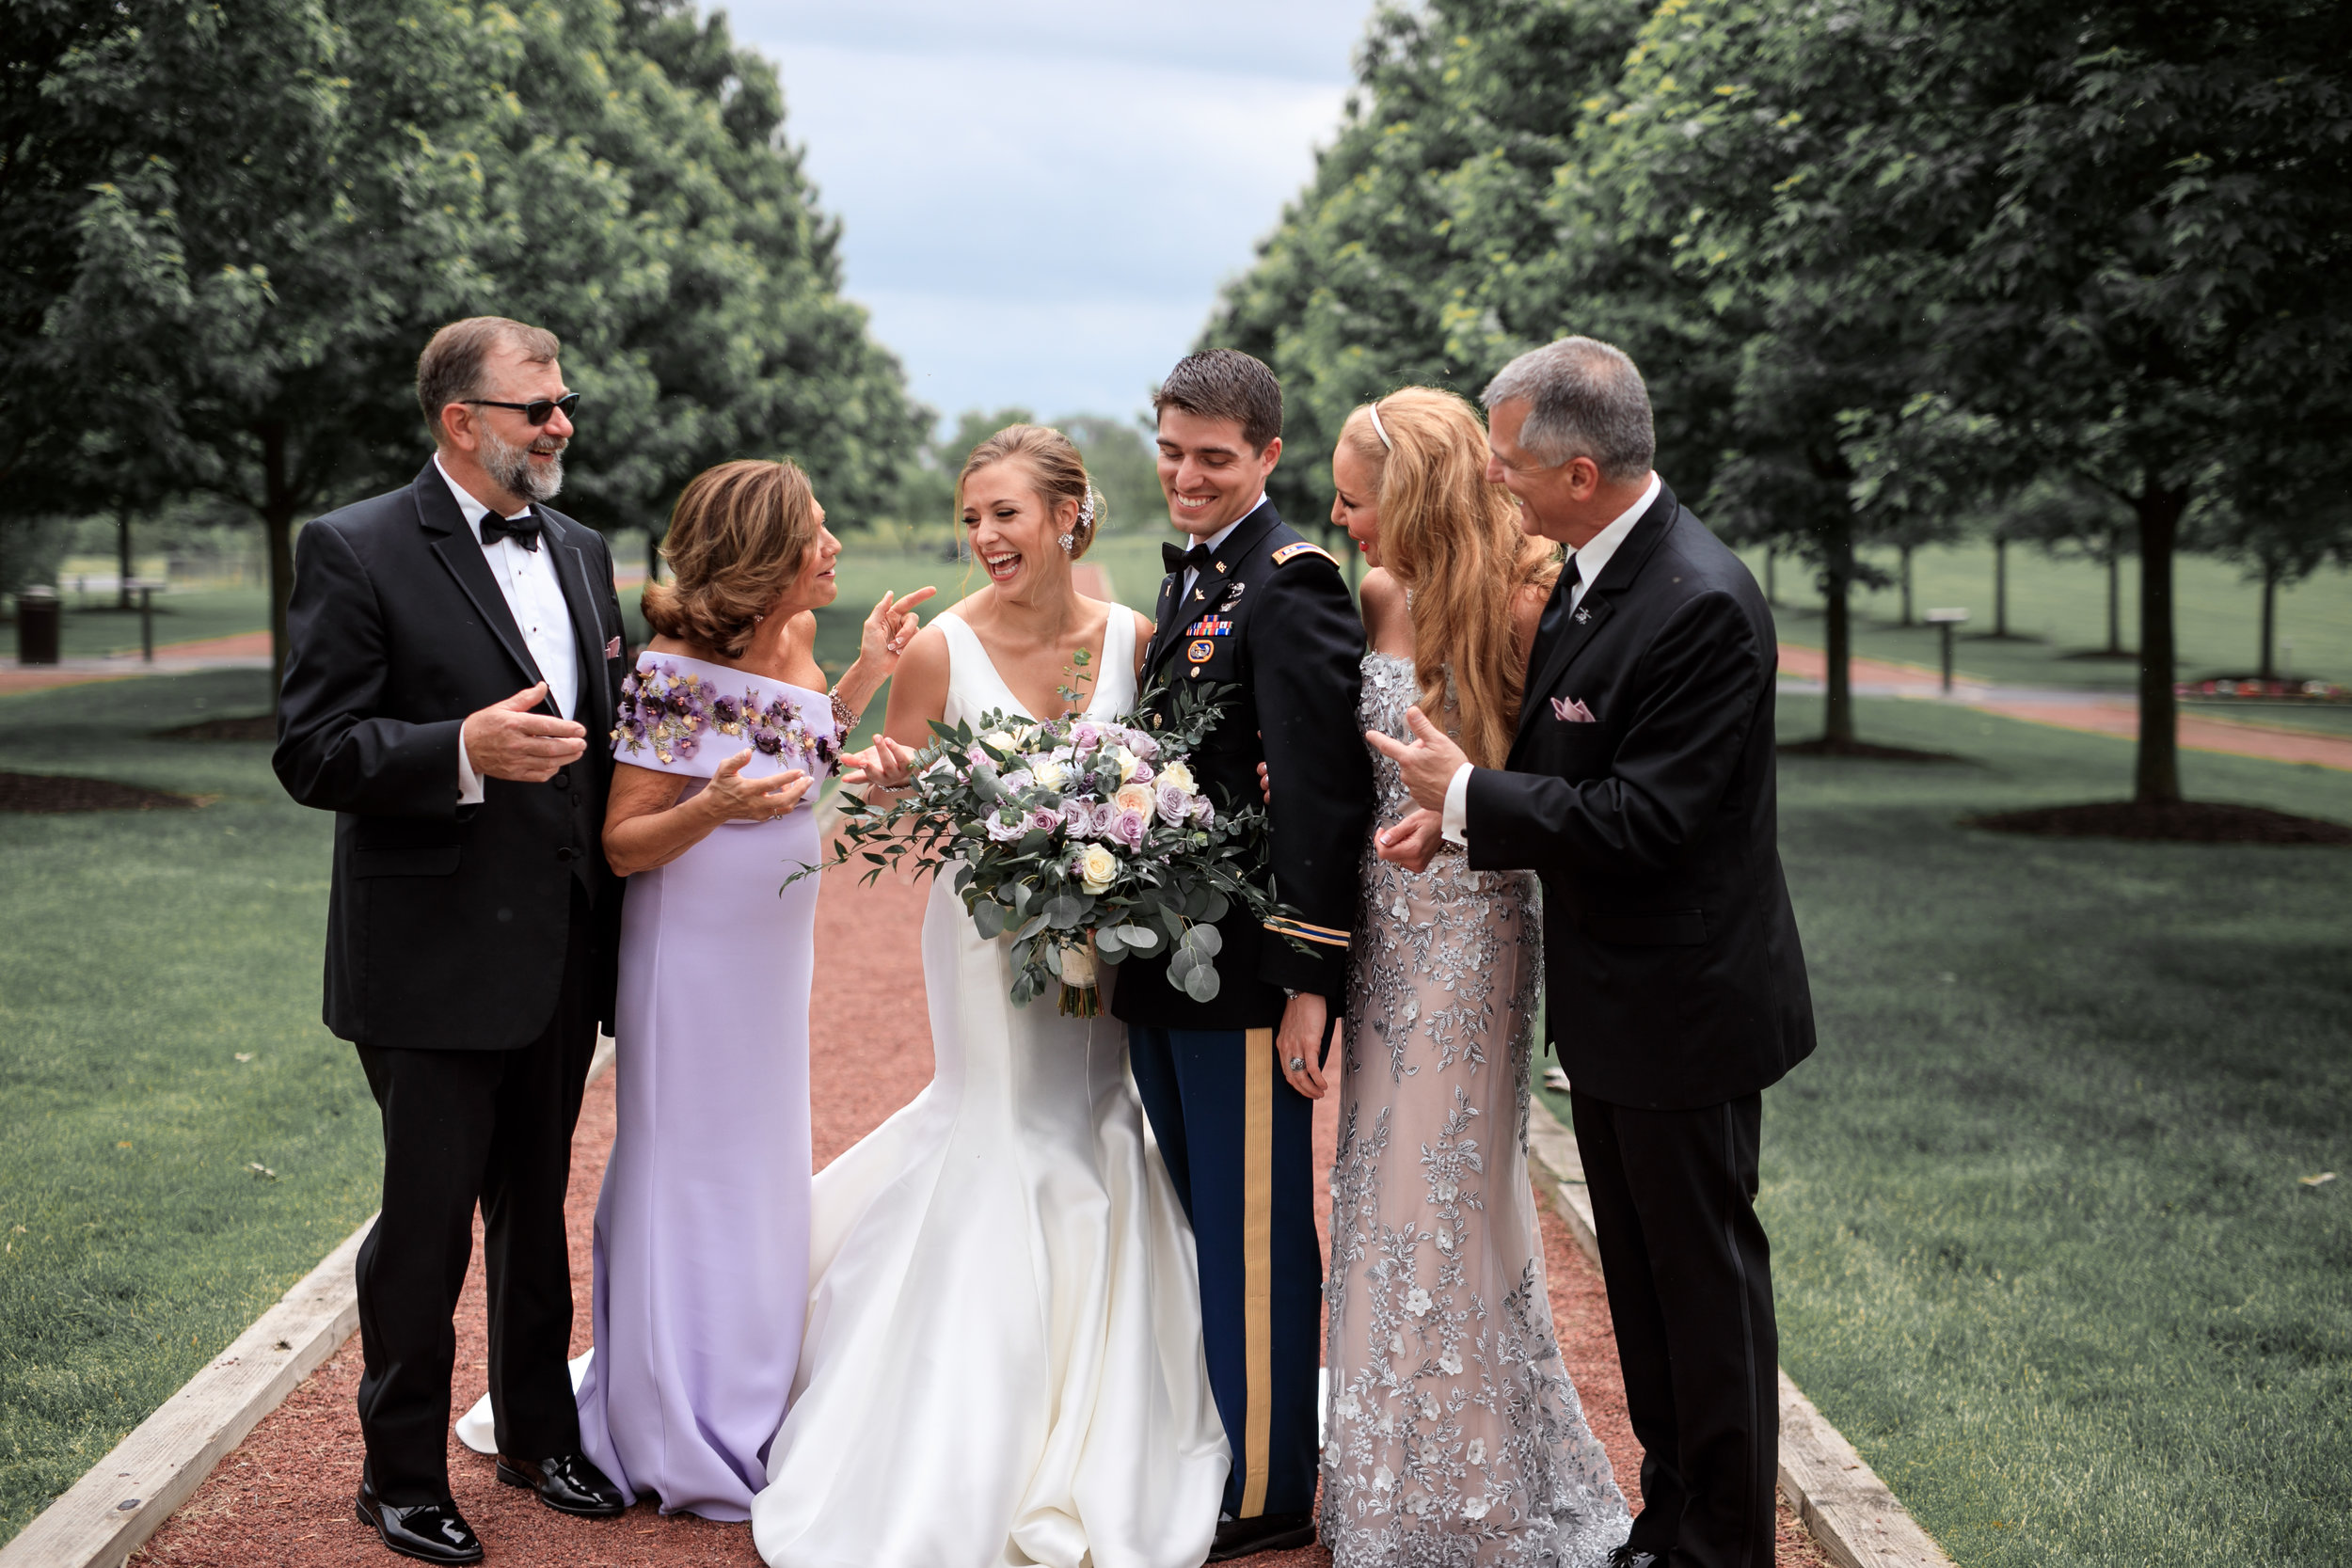 Bride-and-groom-with-family-on-wedding-day.jpg